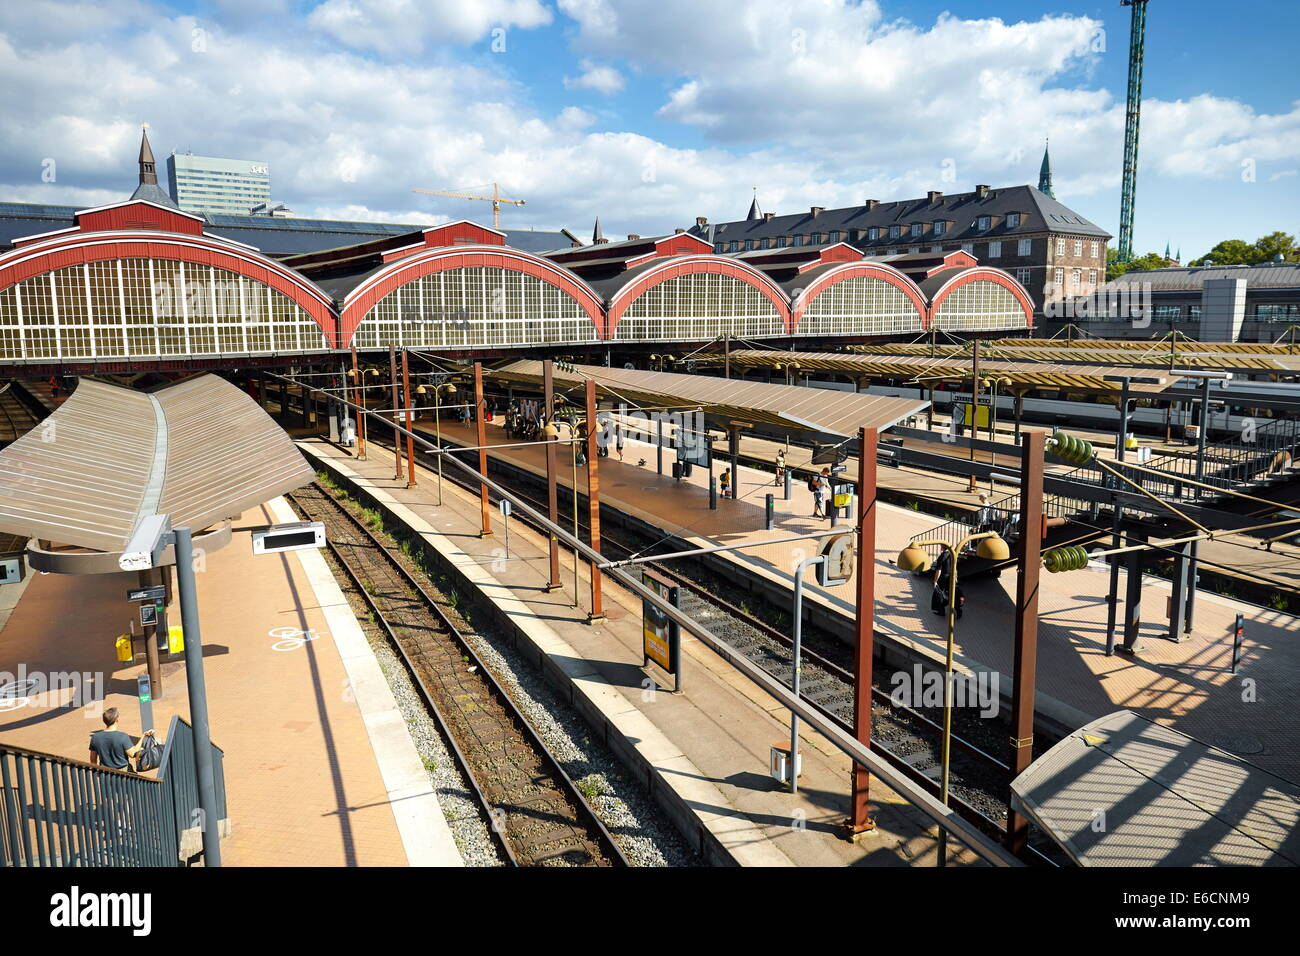 Central Train Station, Copenhagen, Denmark - Stock Image